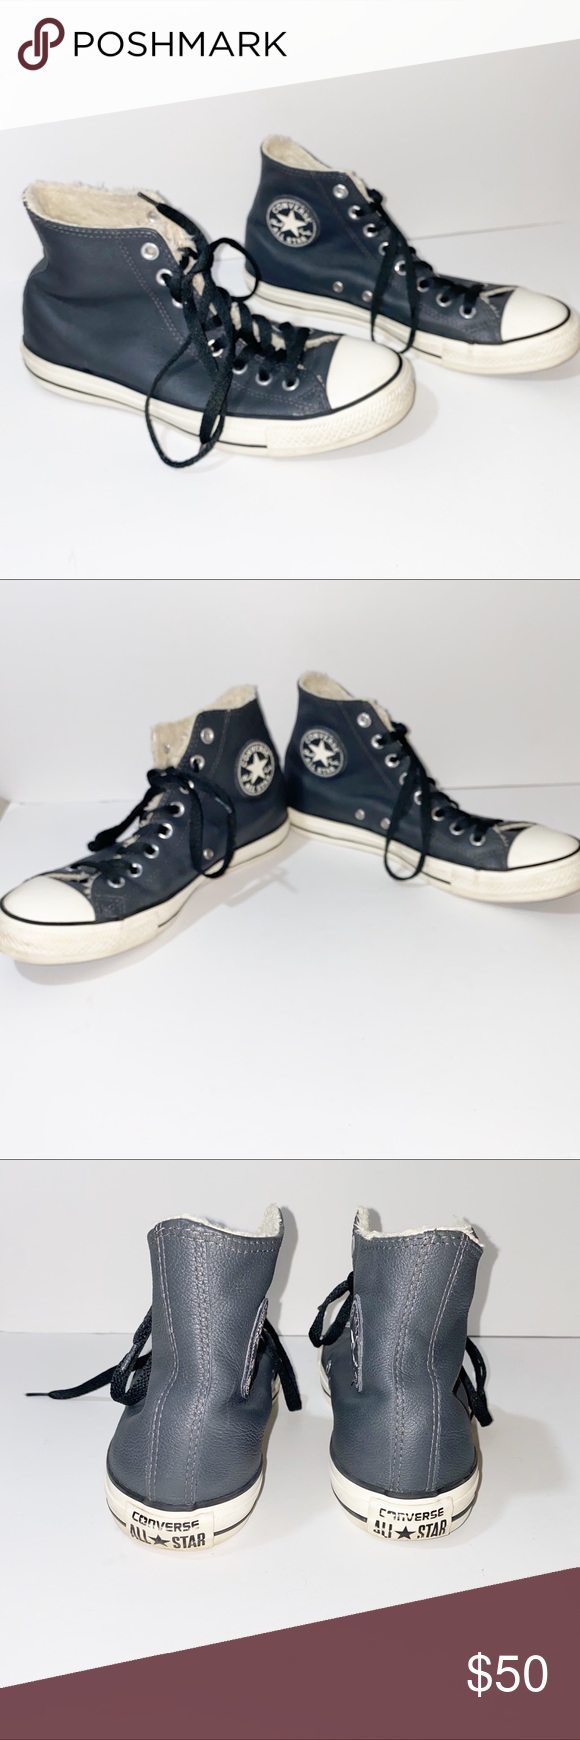 Converse All Stars Black Leather High